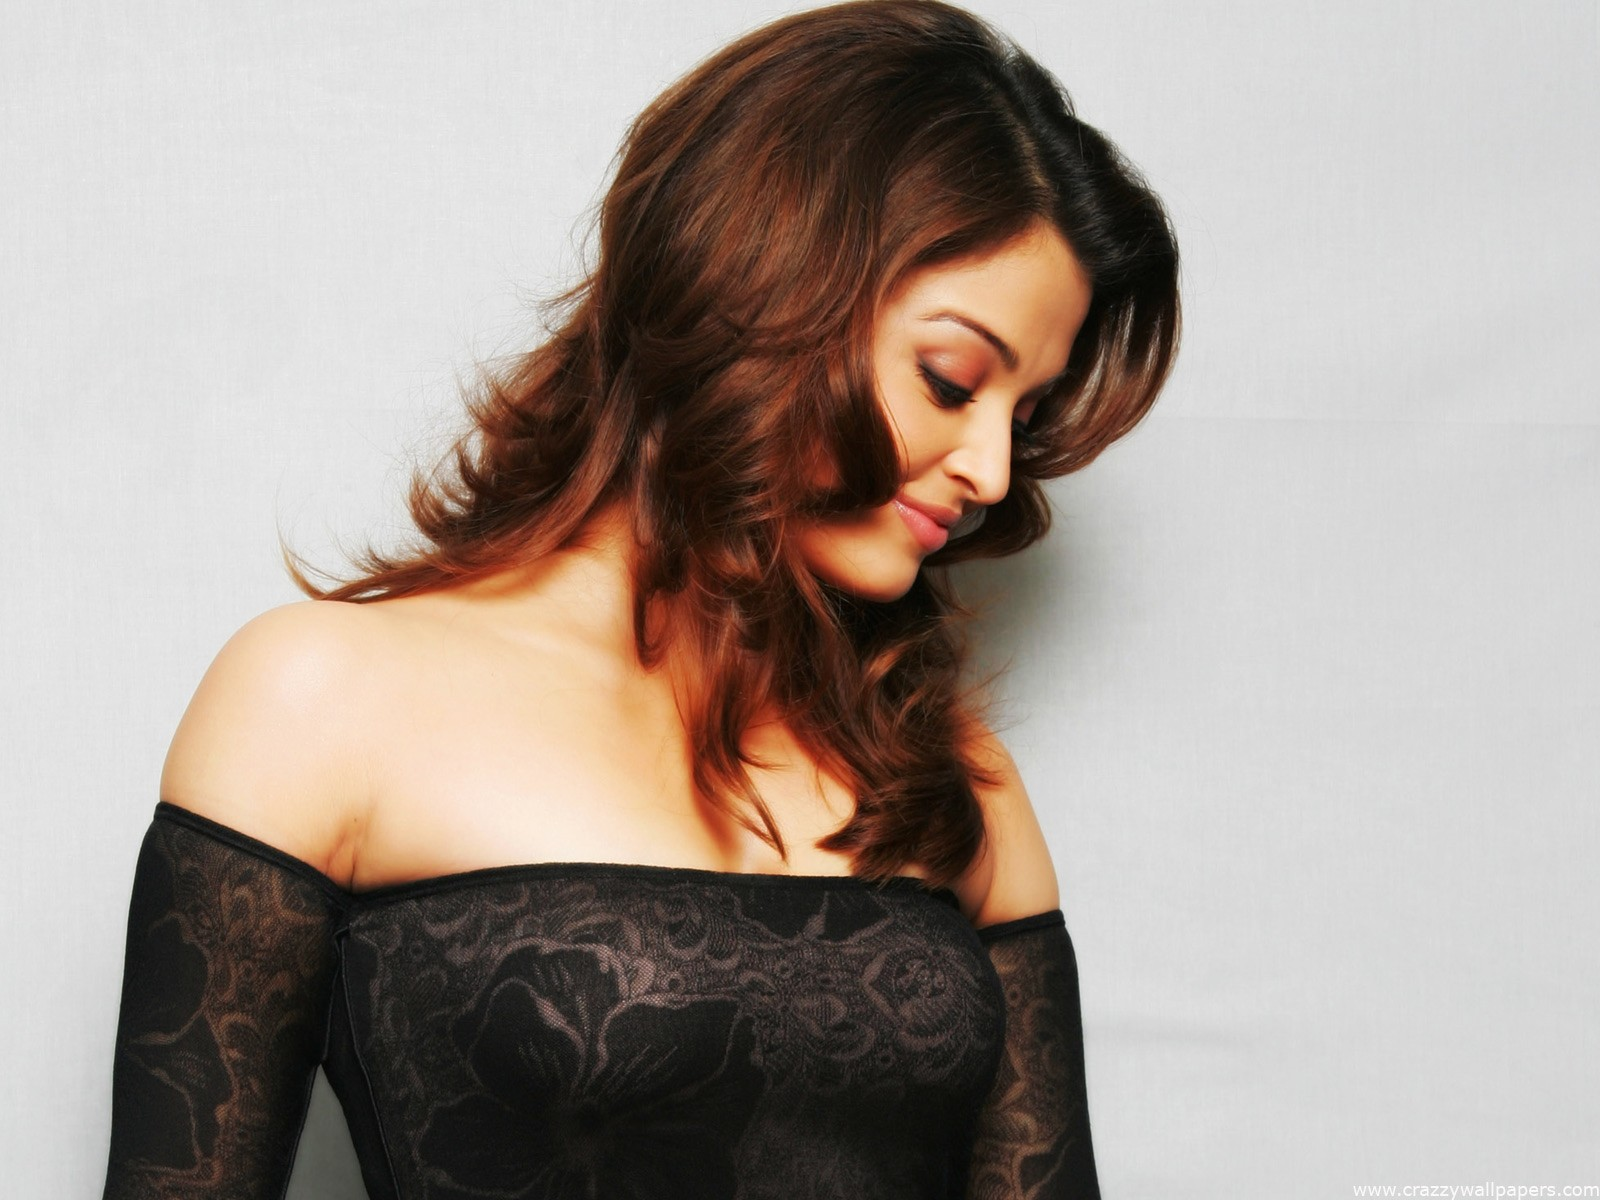 Aishwarya rai beautiful in black 491.13 Kb